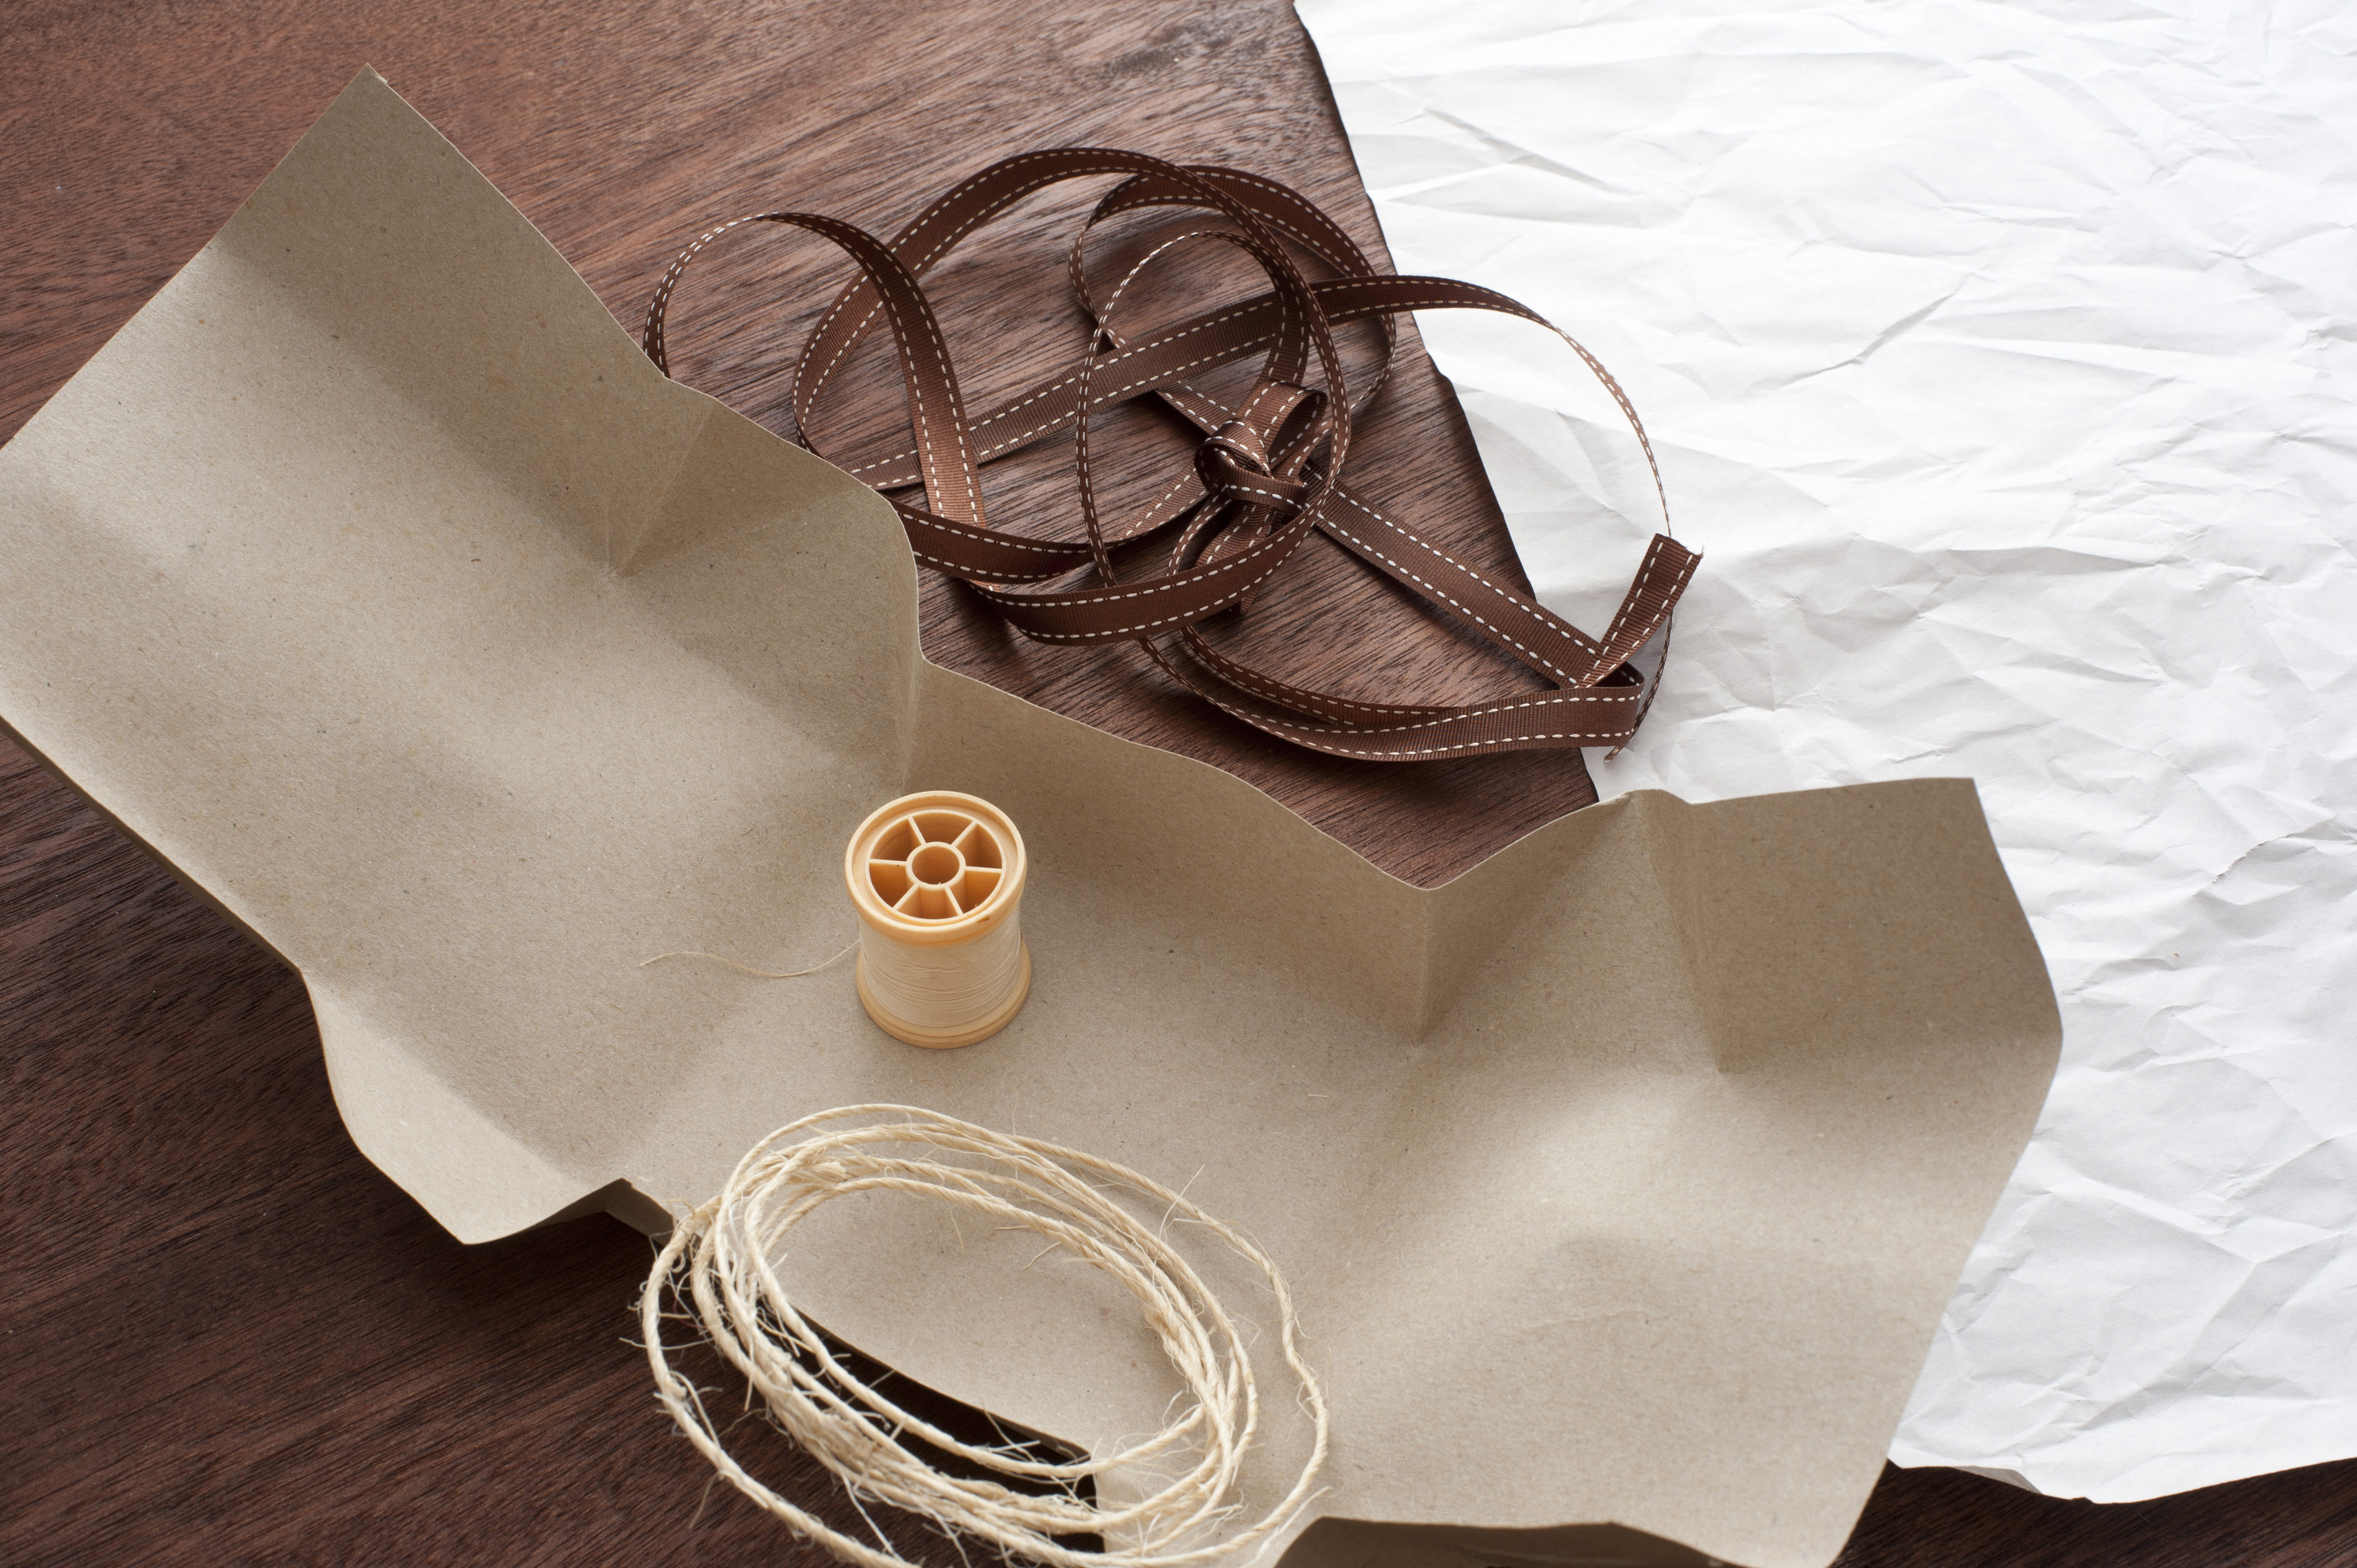 Close-up of wrapping paper and ribbon lying on wooden table. From above